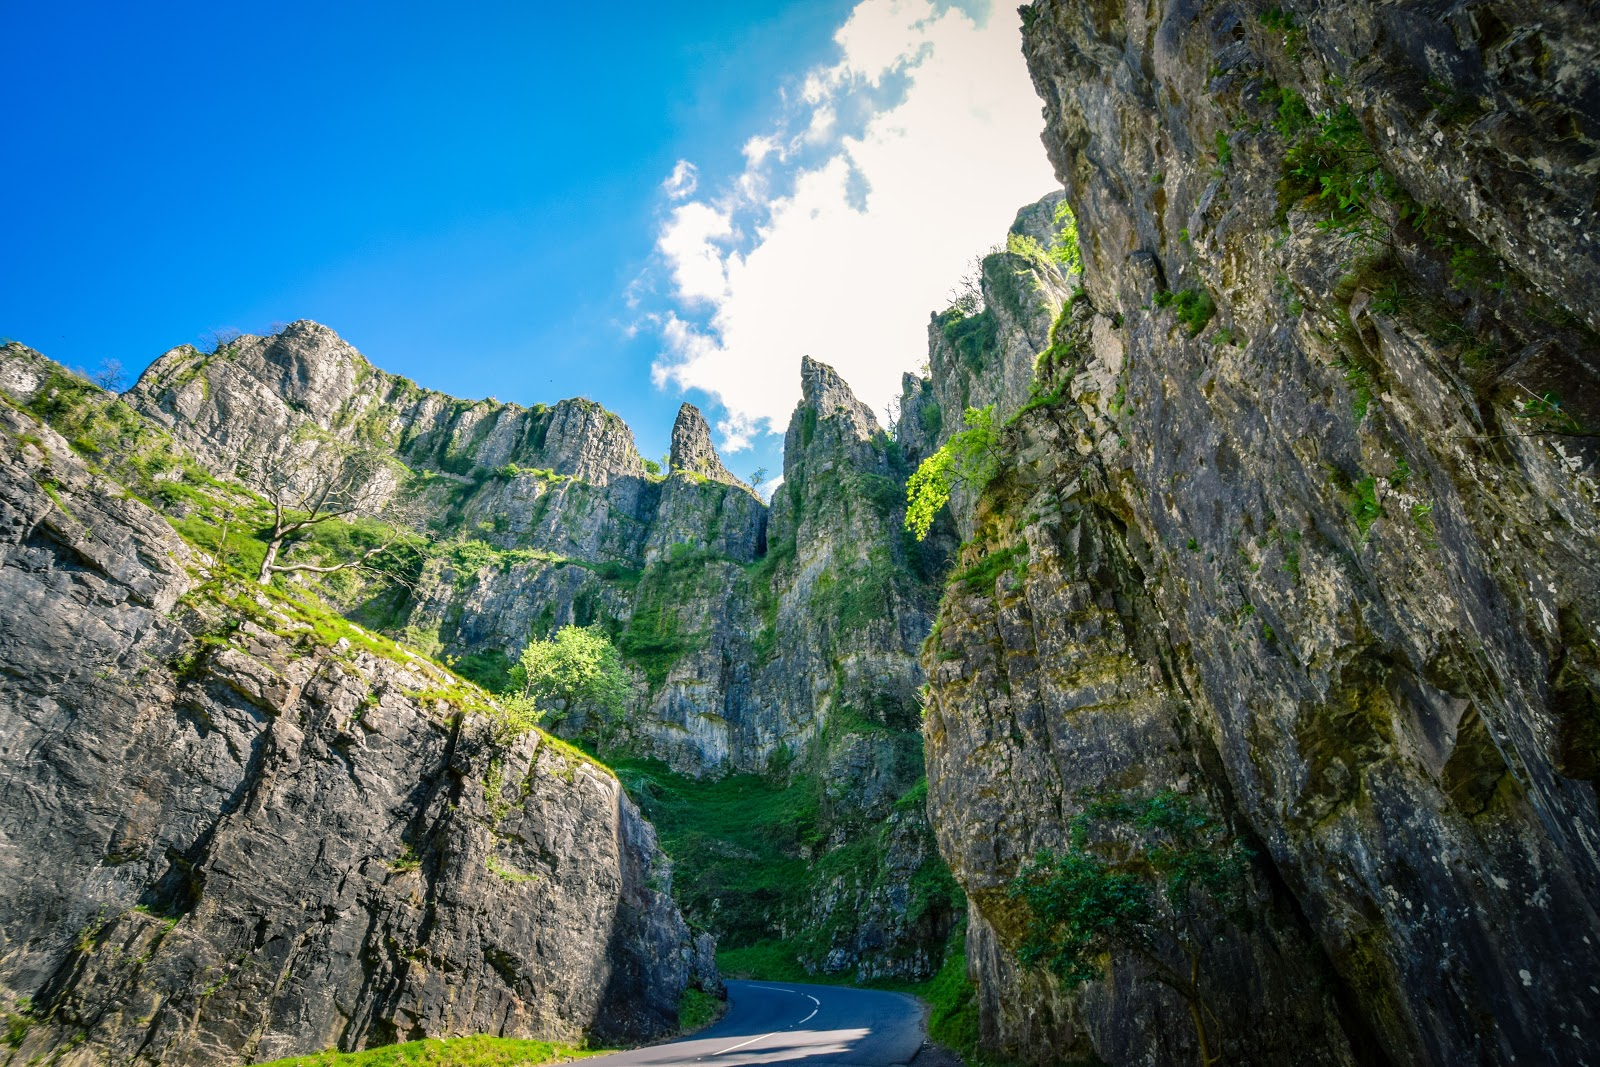 Head to Summerset for great cheddar, local cider, scenic roads and great climbs.